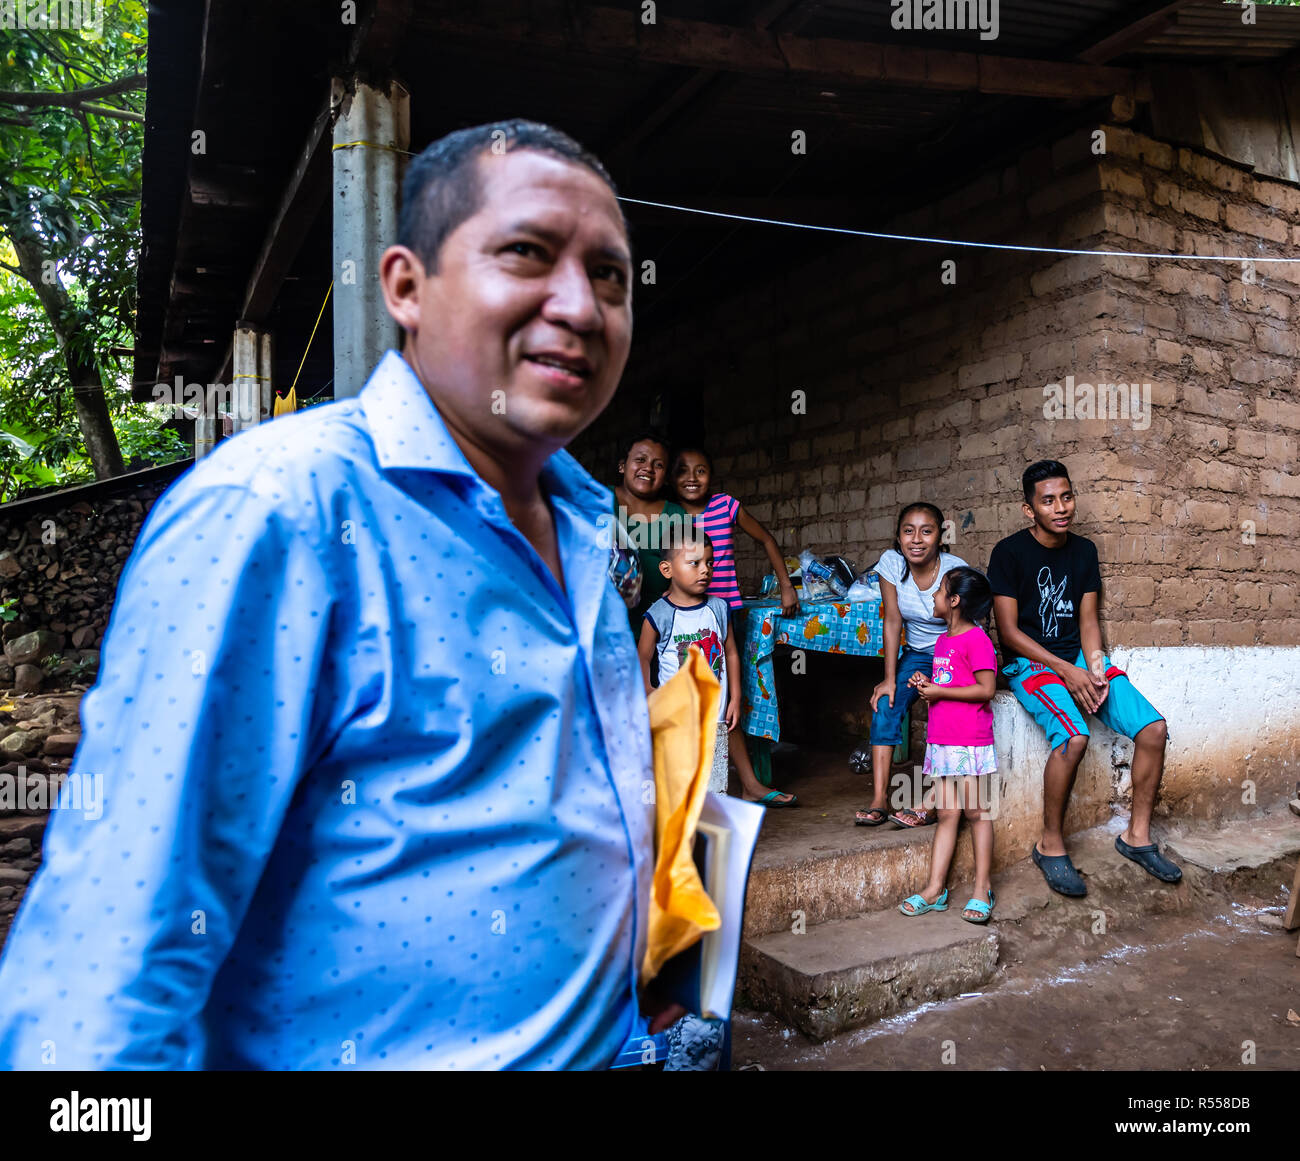 christian missionaries giving food and supplies to small village in Guatemalan jungle - Stock Image